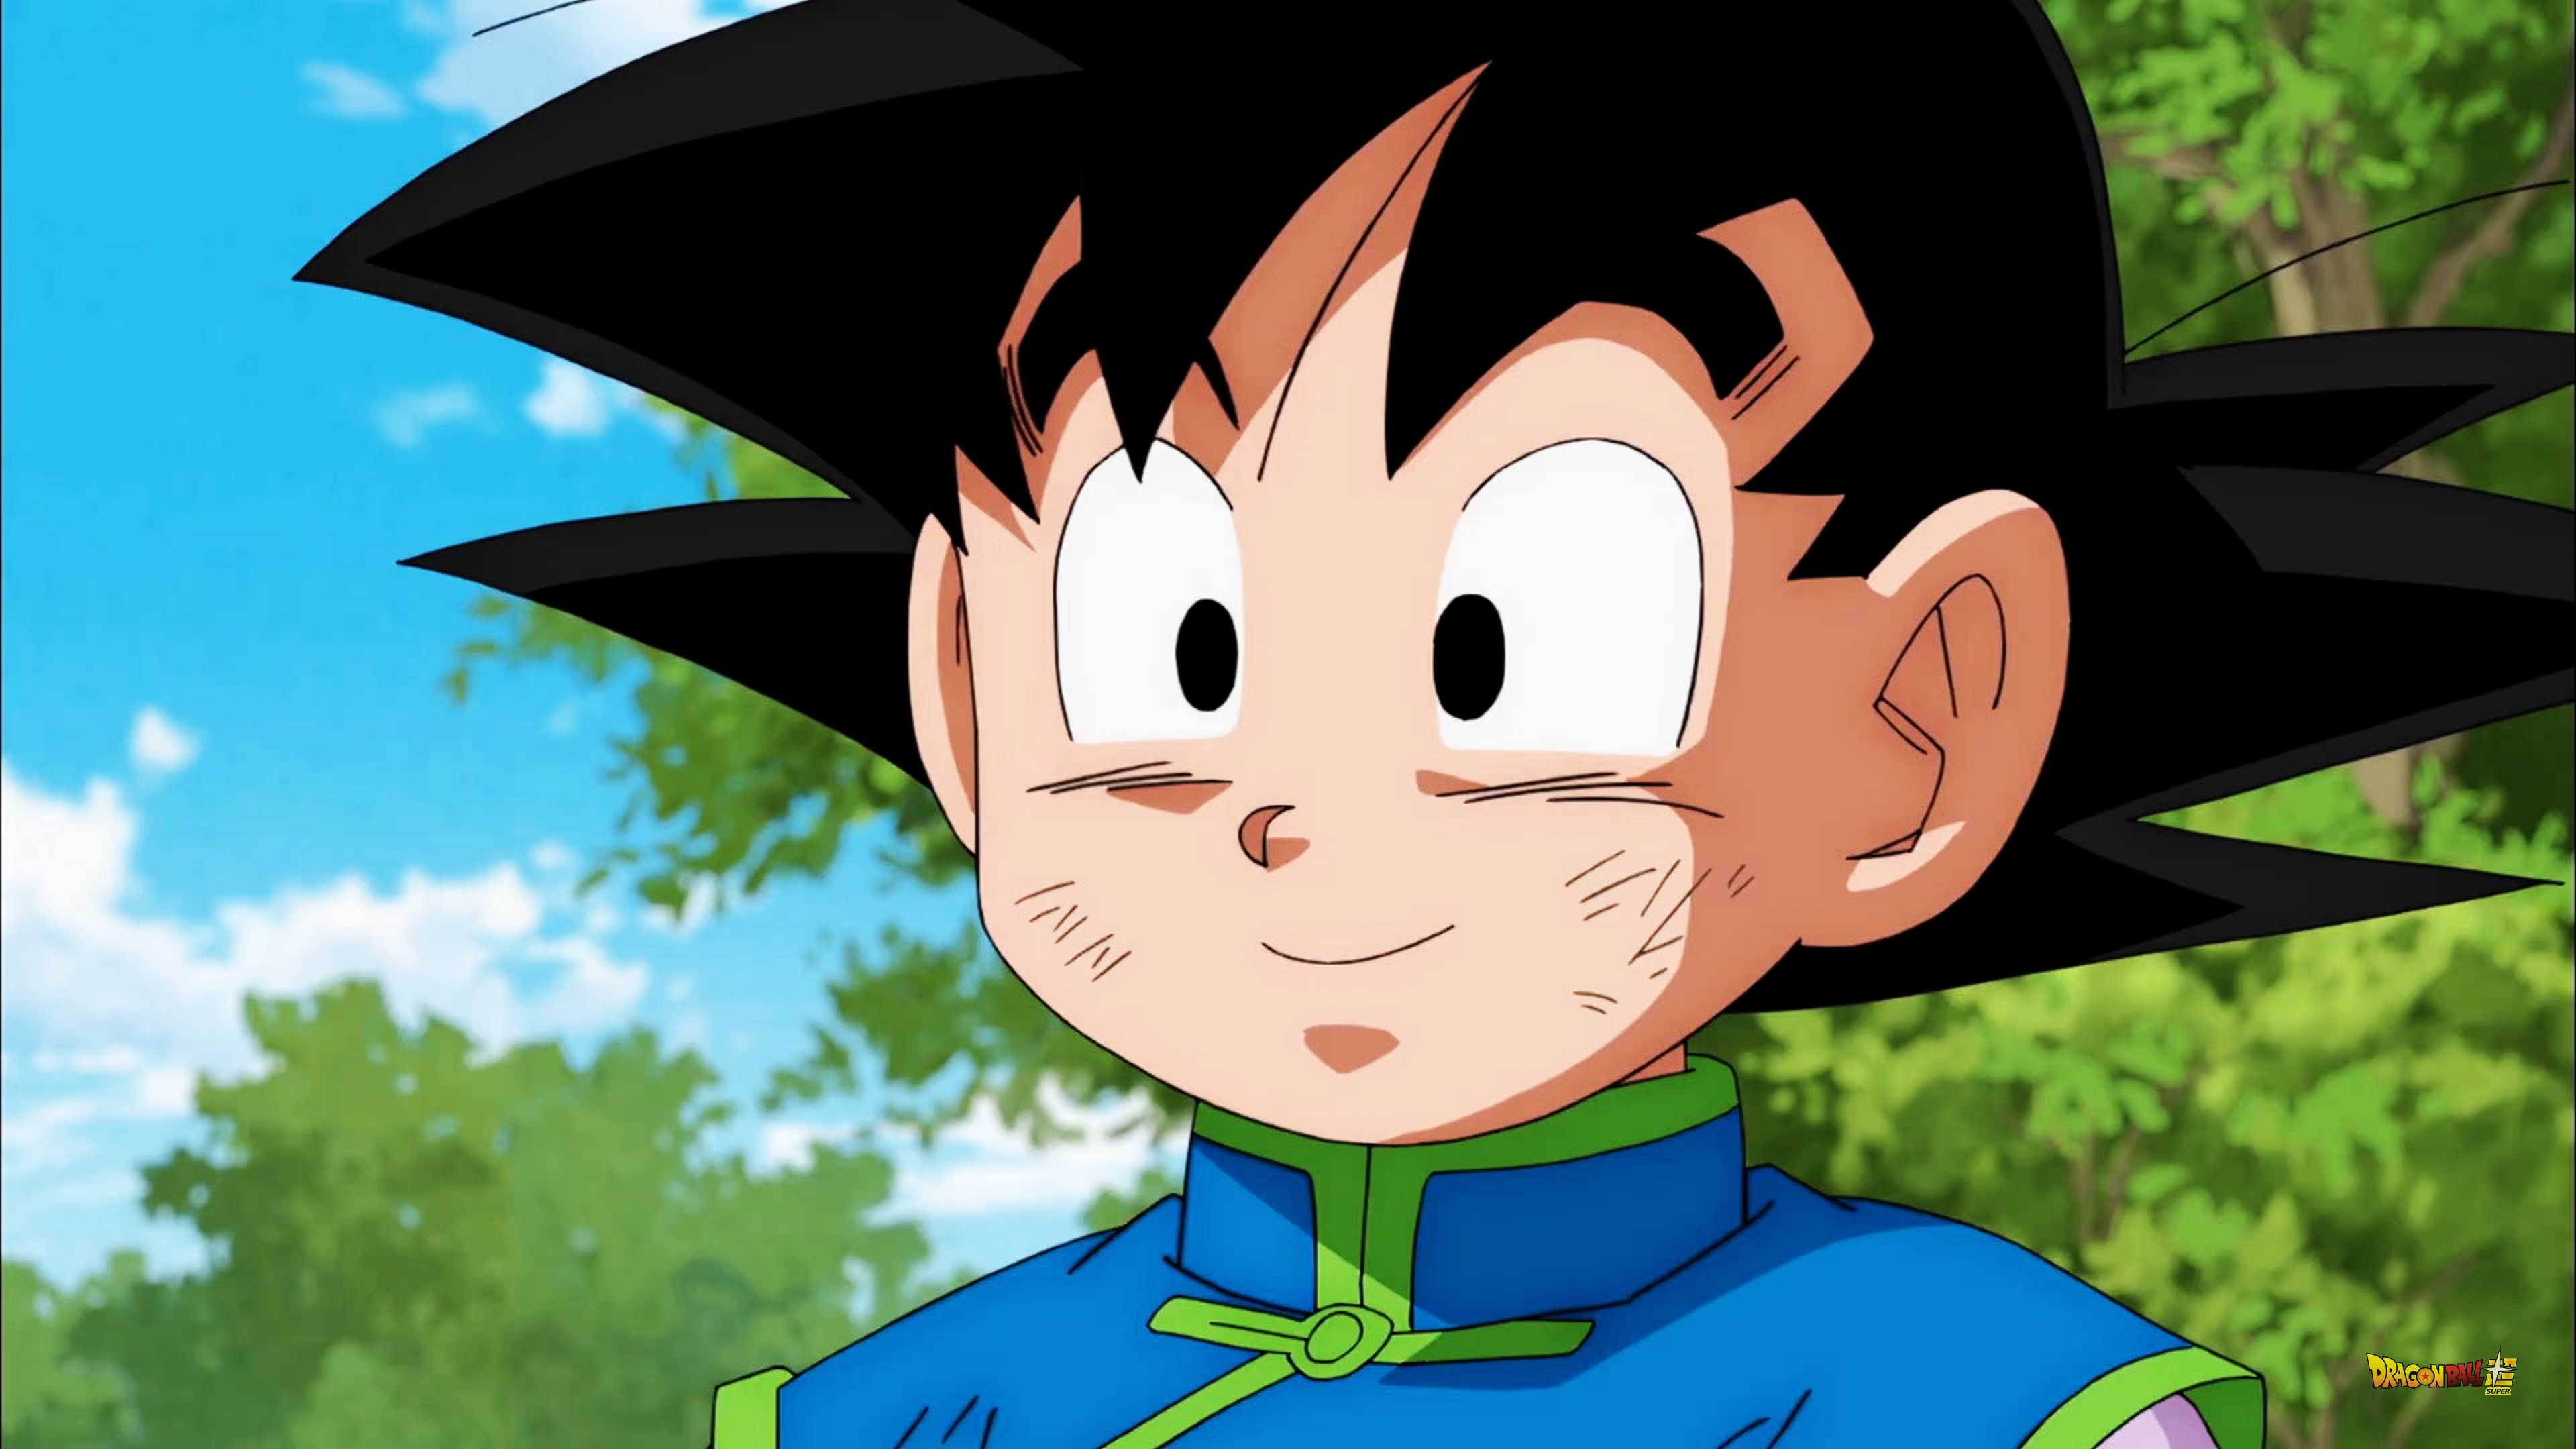 Dragon Ball Super Season 1 Episode 1 S01E01 4k uHD Wallpapers 27 Goku works in his radish field, but wants to go training and fighting.